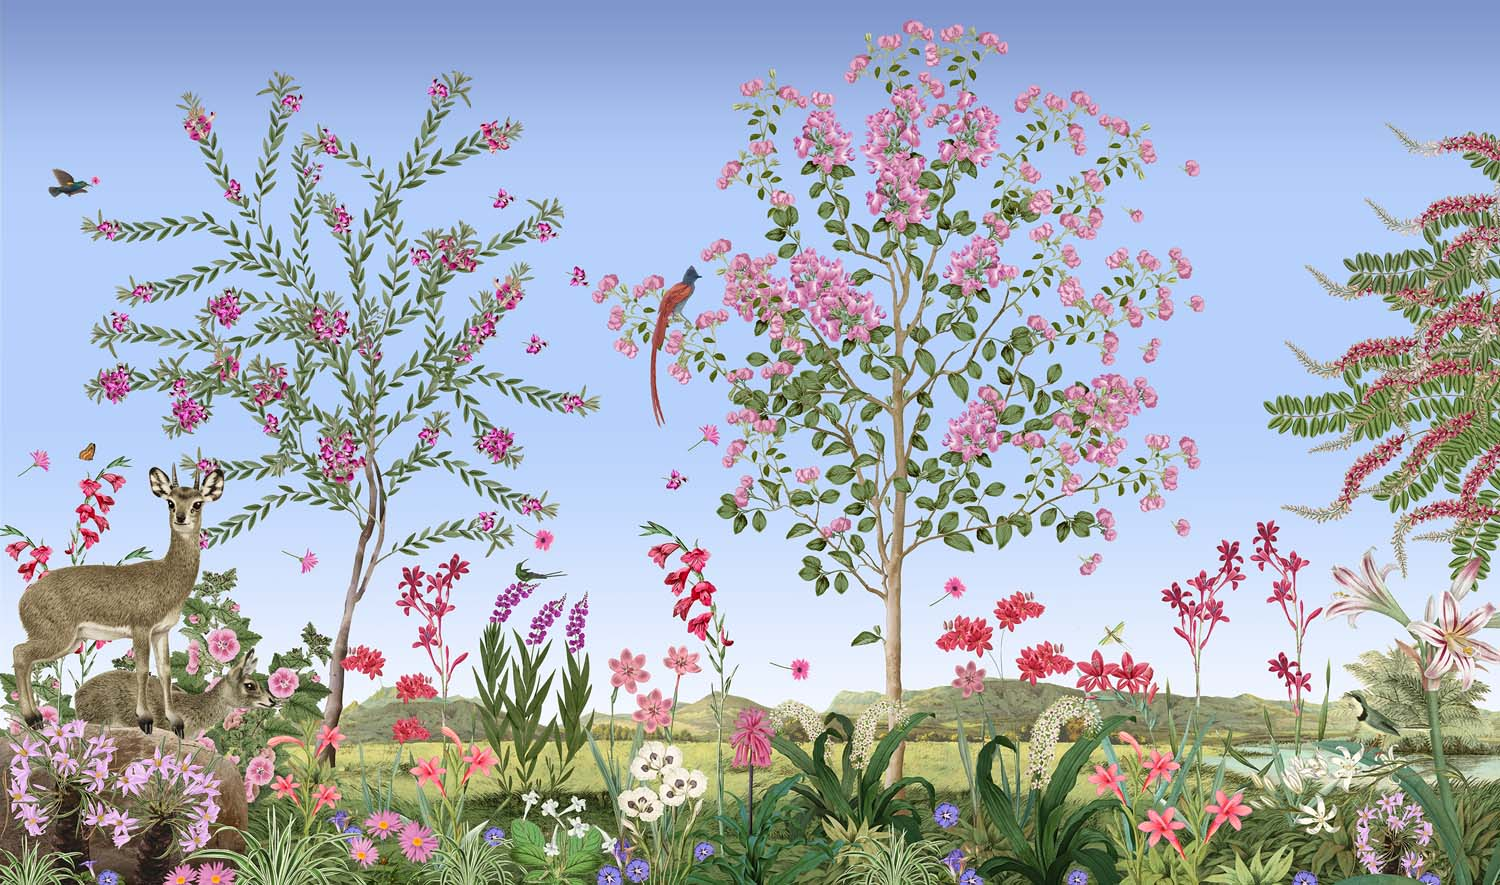 South African landscape with Sweet Pea bush and Klipspringers